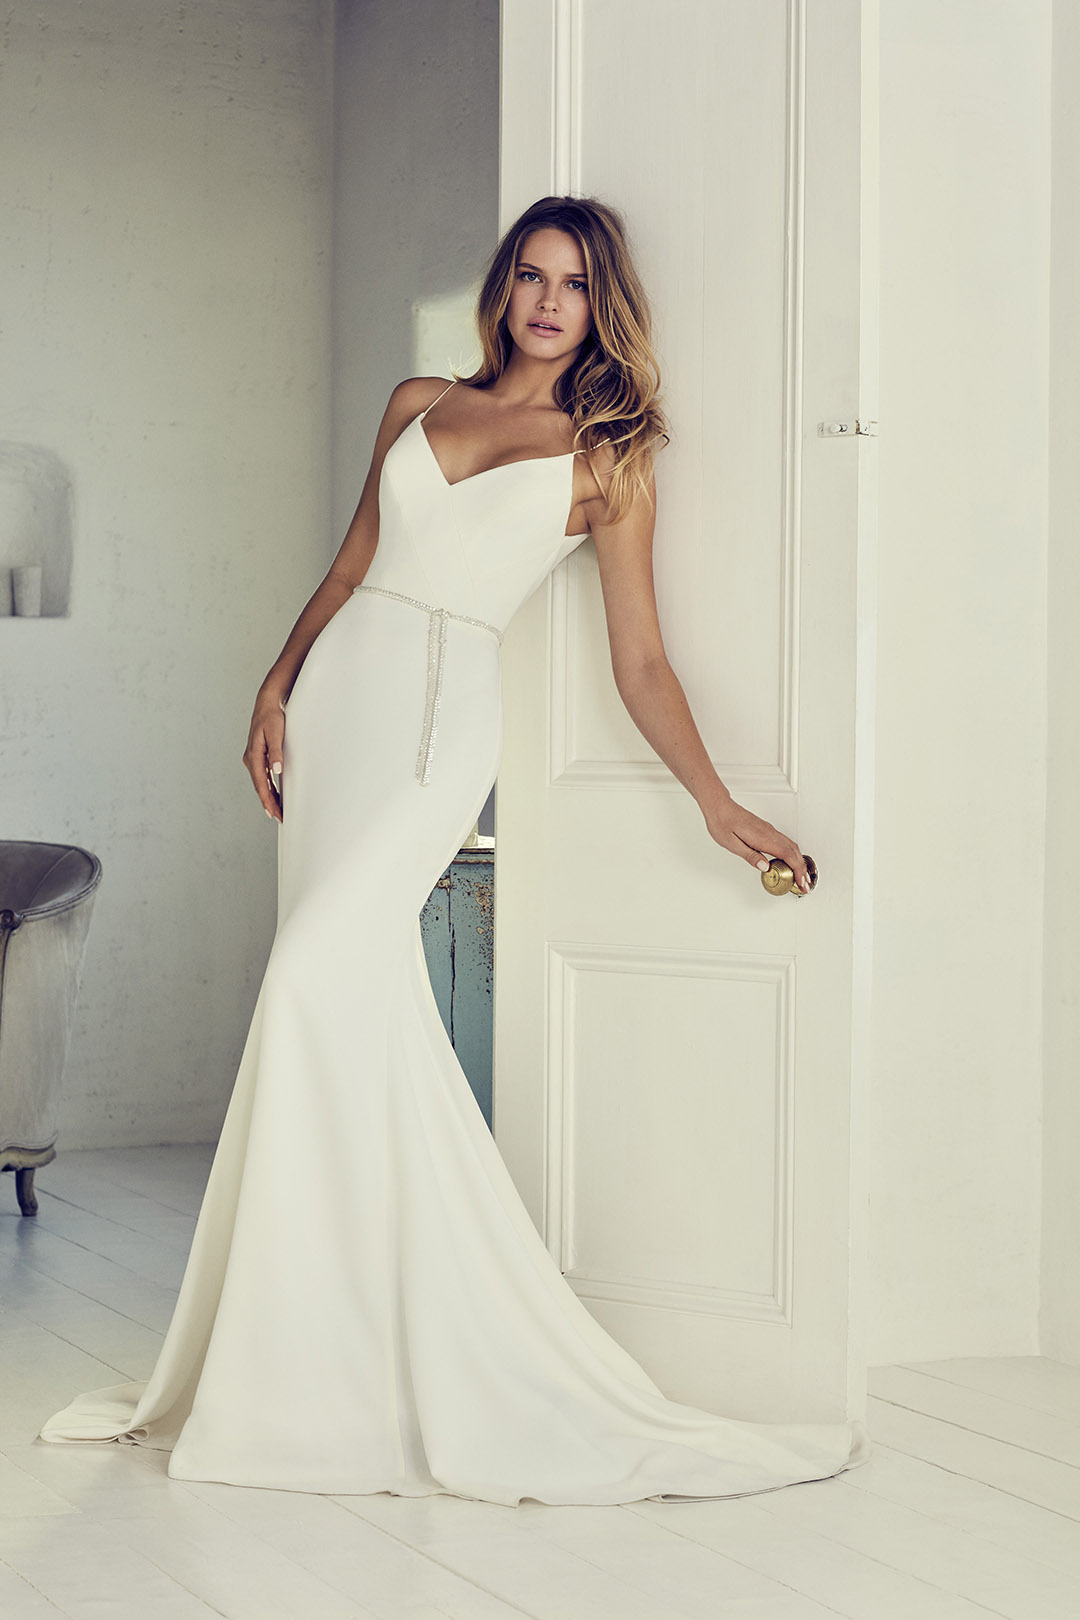 venus-wedding-dresses-uk-suzanne-neville-collection-hd-2019